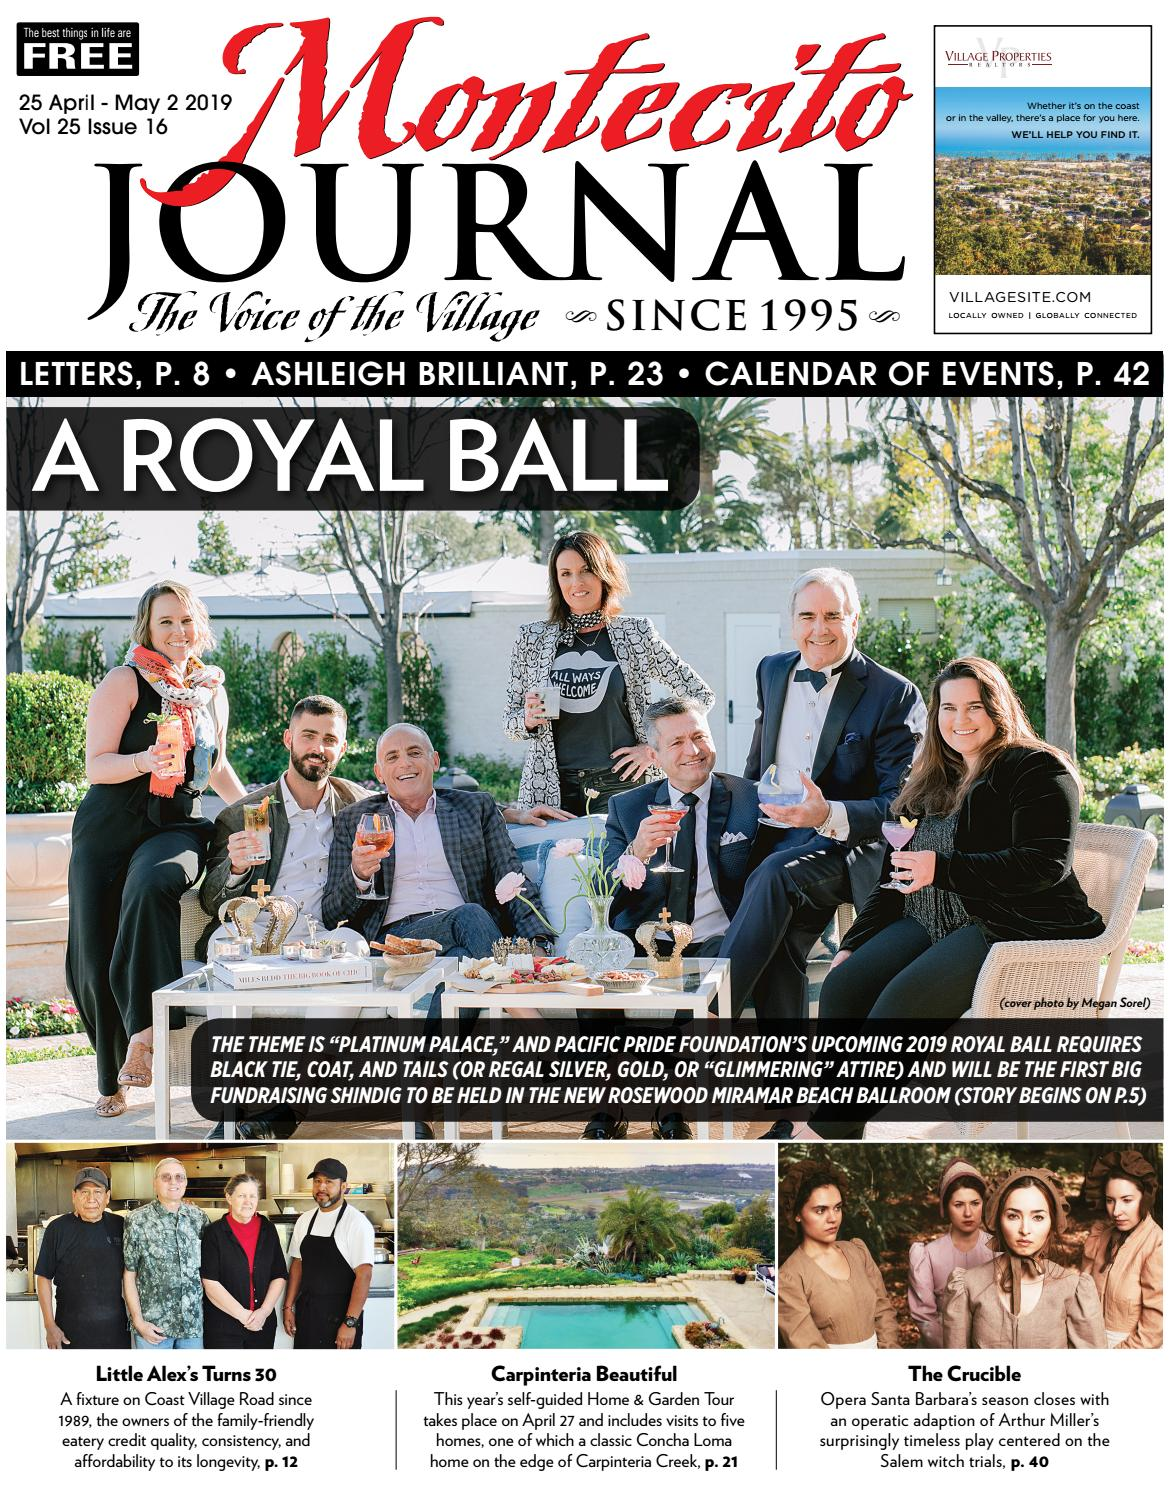 d1f7970743d421 A Royal Ball by Montecito Journal - issuu